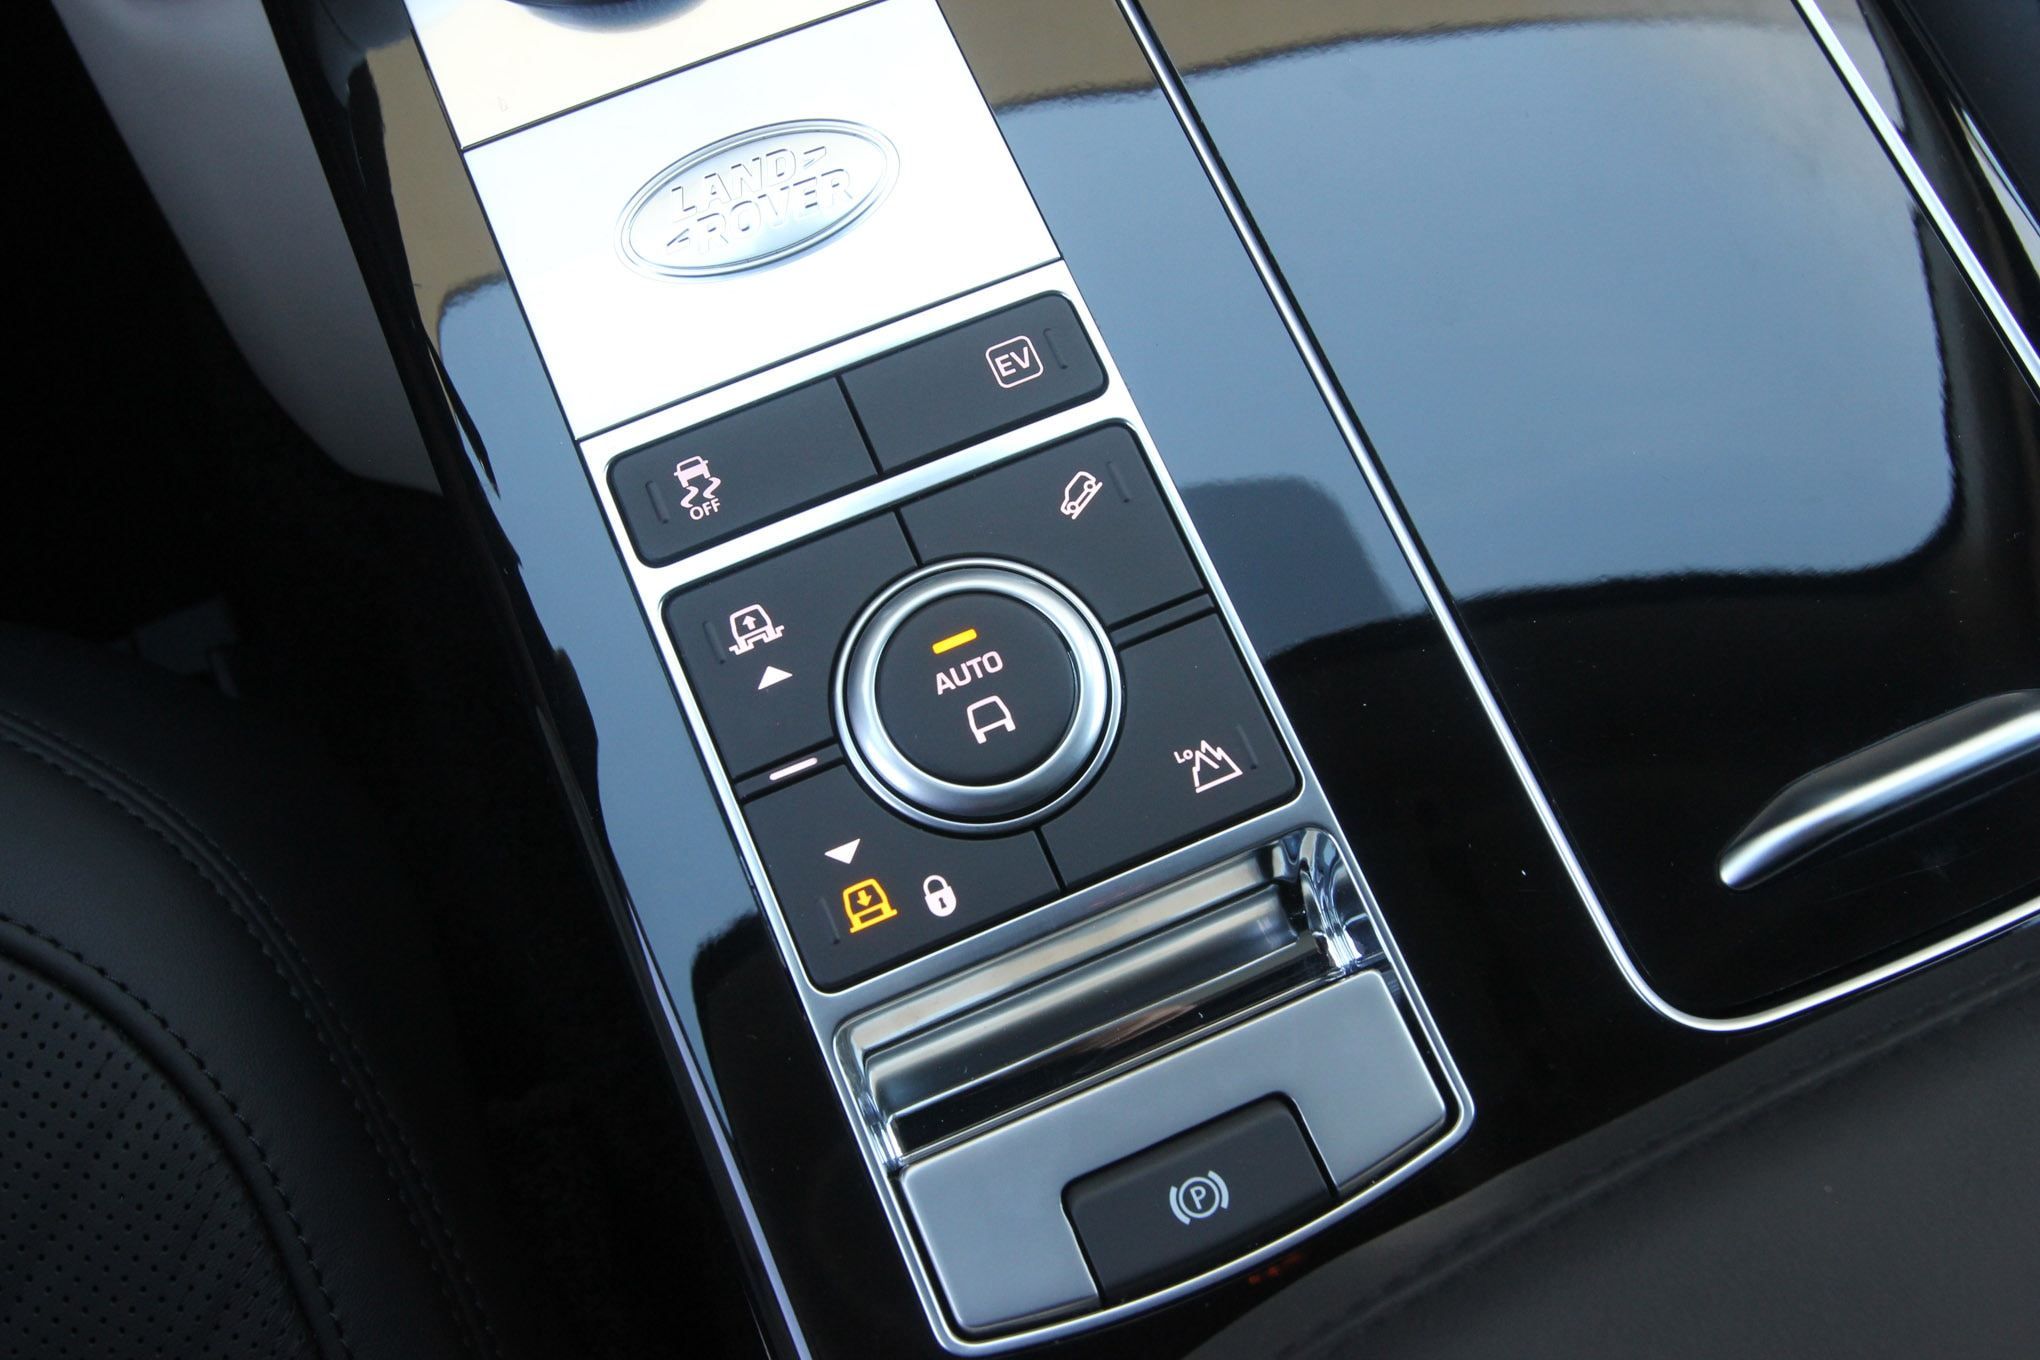 Both the Range Rover and the Range Rover Sport have fulltime 4WD and use a button to engage the low range reduction in the transfer case. It is located with all of the controls for the air suspension and hill descent, around the Terrain Response dial.